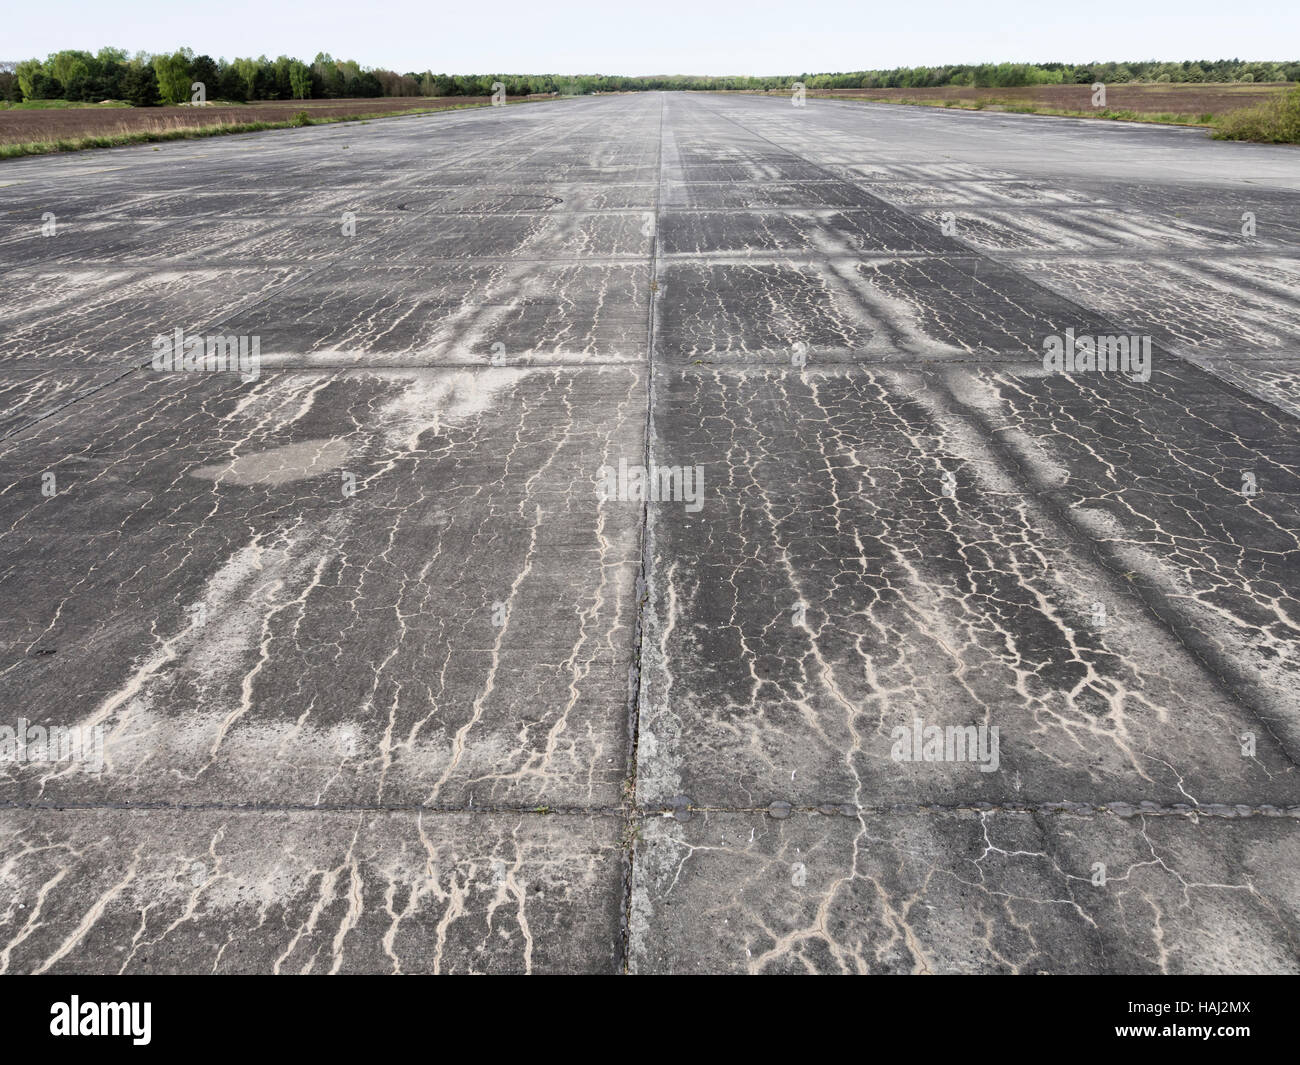 Abandoned concrete airport runway and airfield, fallow land - Stock Image